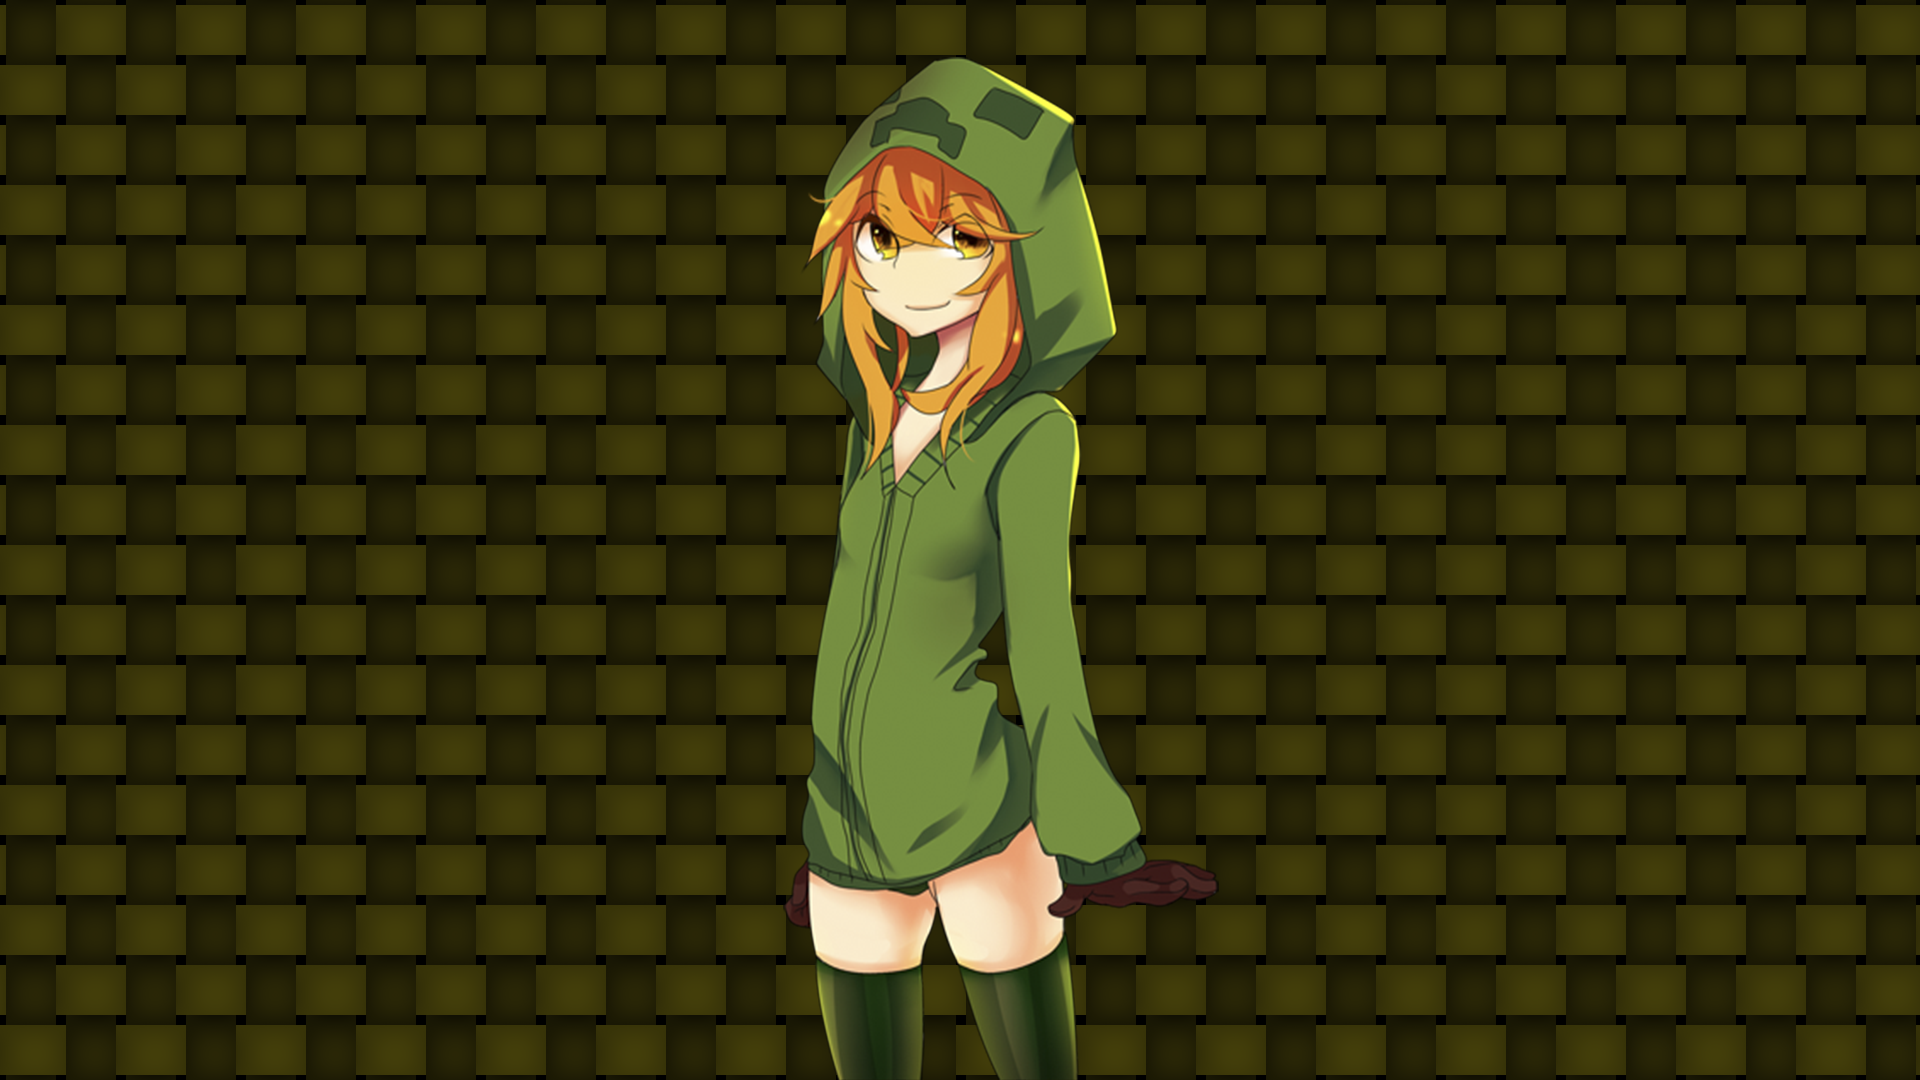 Anime Minecraft Wallpapers Top Free Anime Minecraft Backgrounds Wallpaperaccess